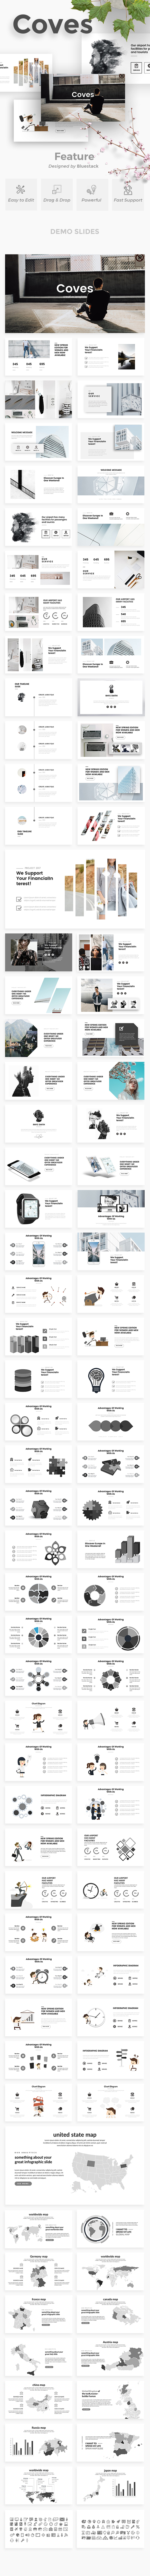 GraphicRiver Coves Creative Keynote Template 20996742